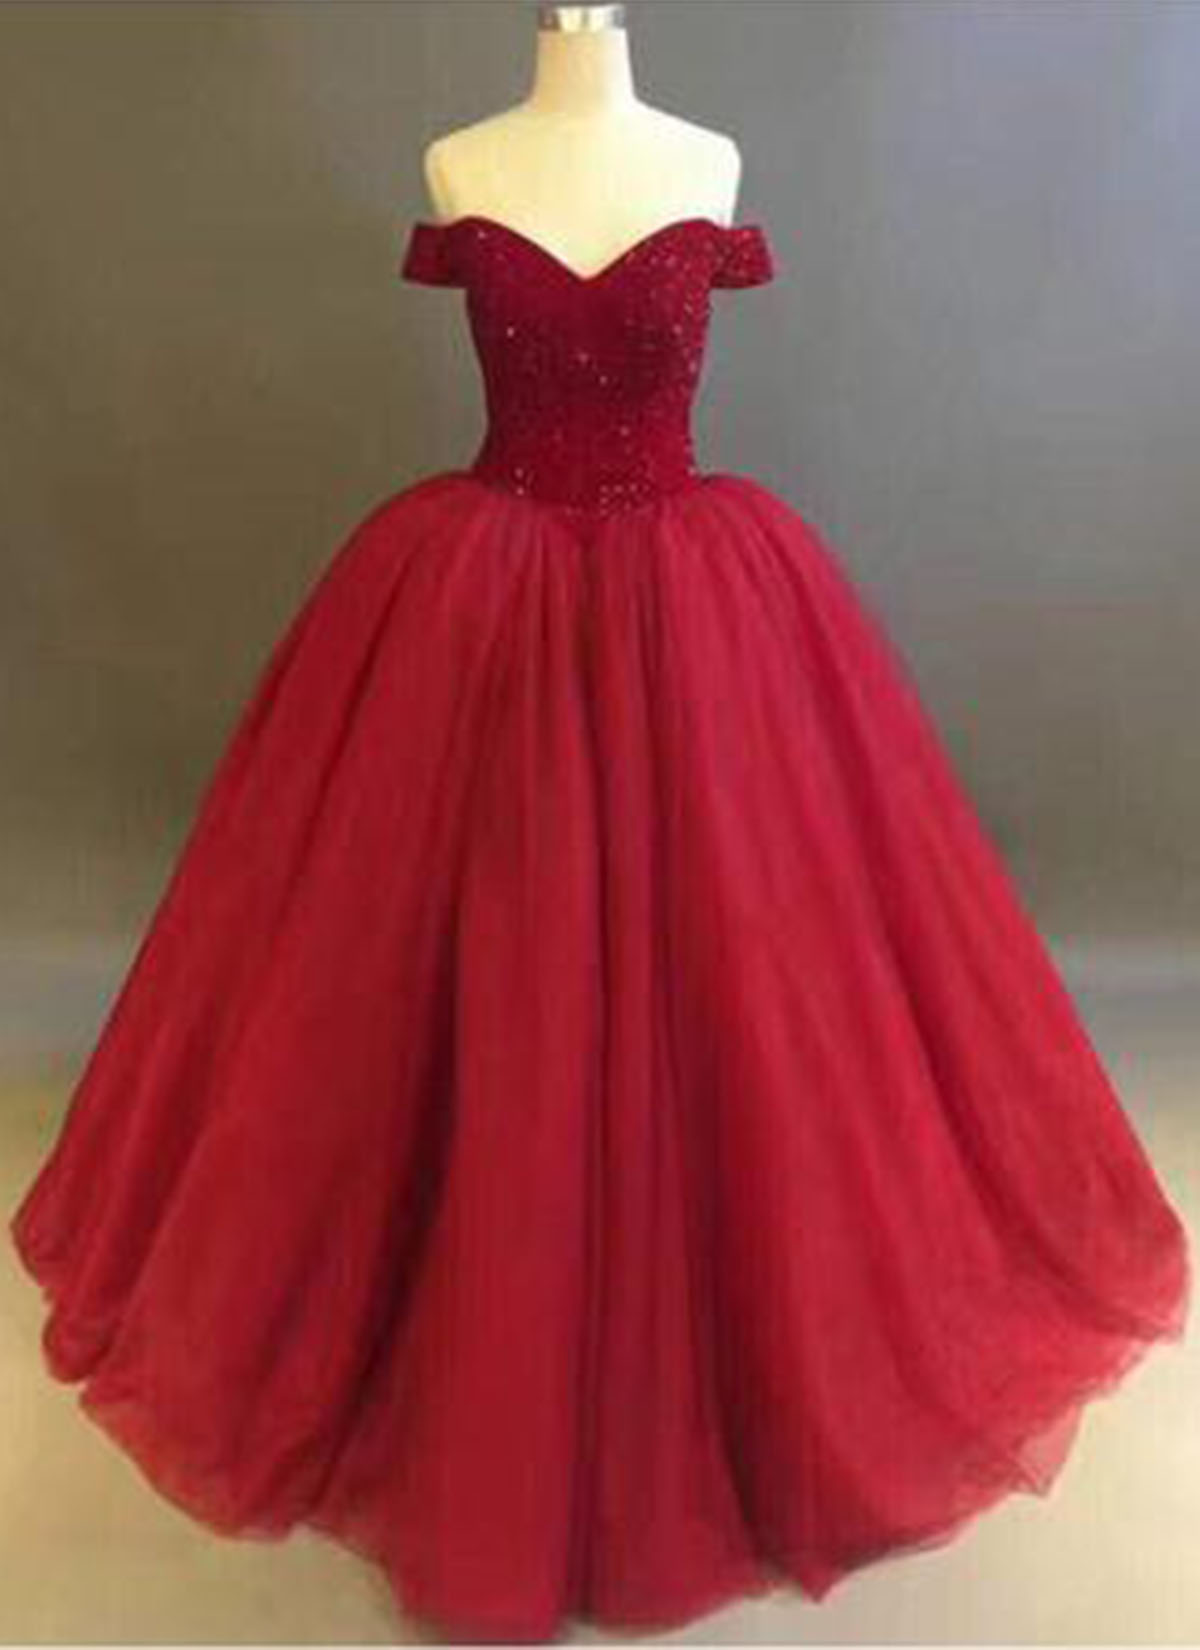 Impressive Pockets Red Tulle Strapless Length Off Shoulder Ball Long Winter Formal Cheap Prom Dresses By Sweeartdress Red Tulle Strapless Winter Ball Dresses Teens Winter Ball Dresses wedding dress Winter Ball Dresses